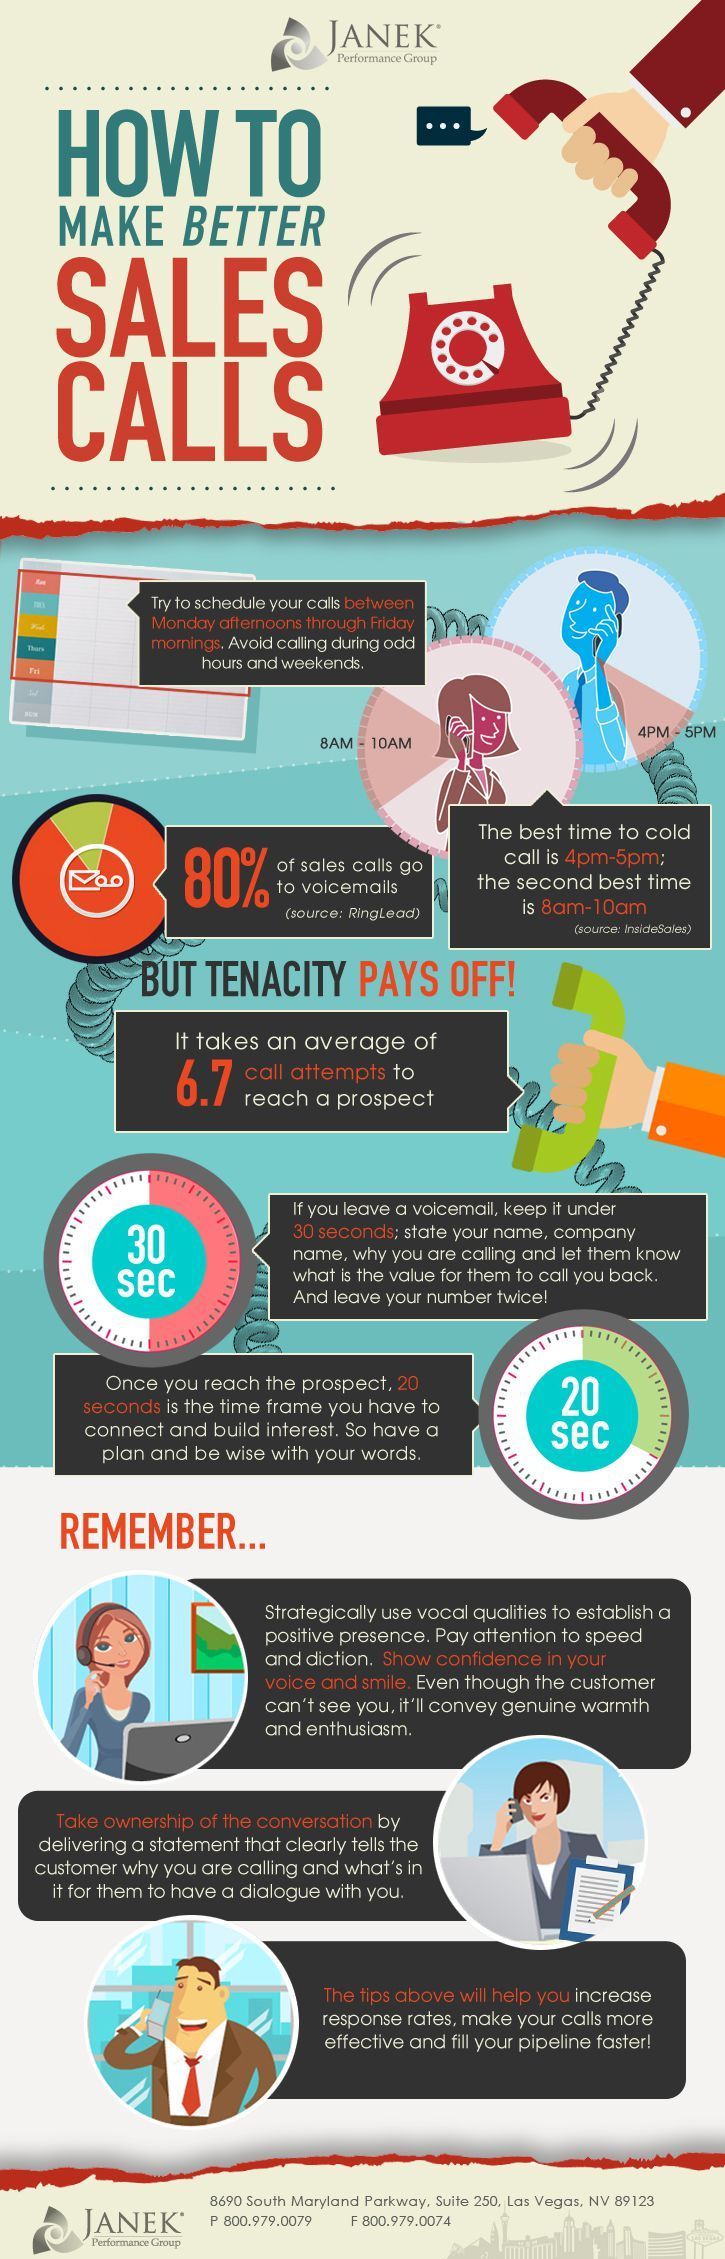 8 Ways to Make Your Sales Calls Better Right Now [Infographic]